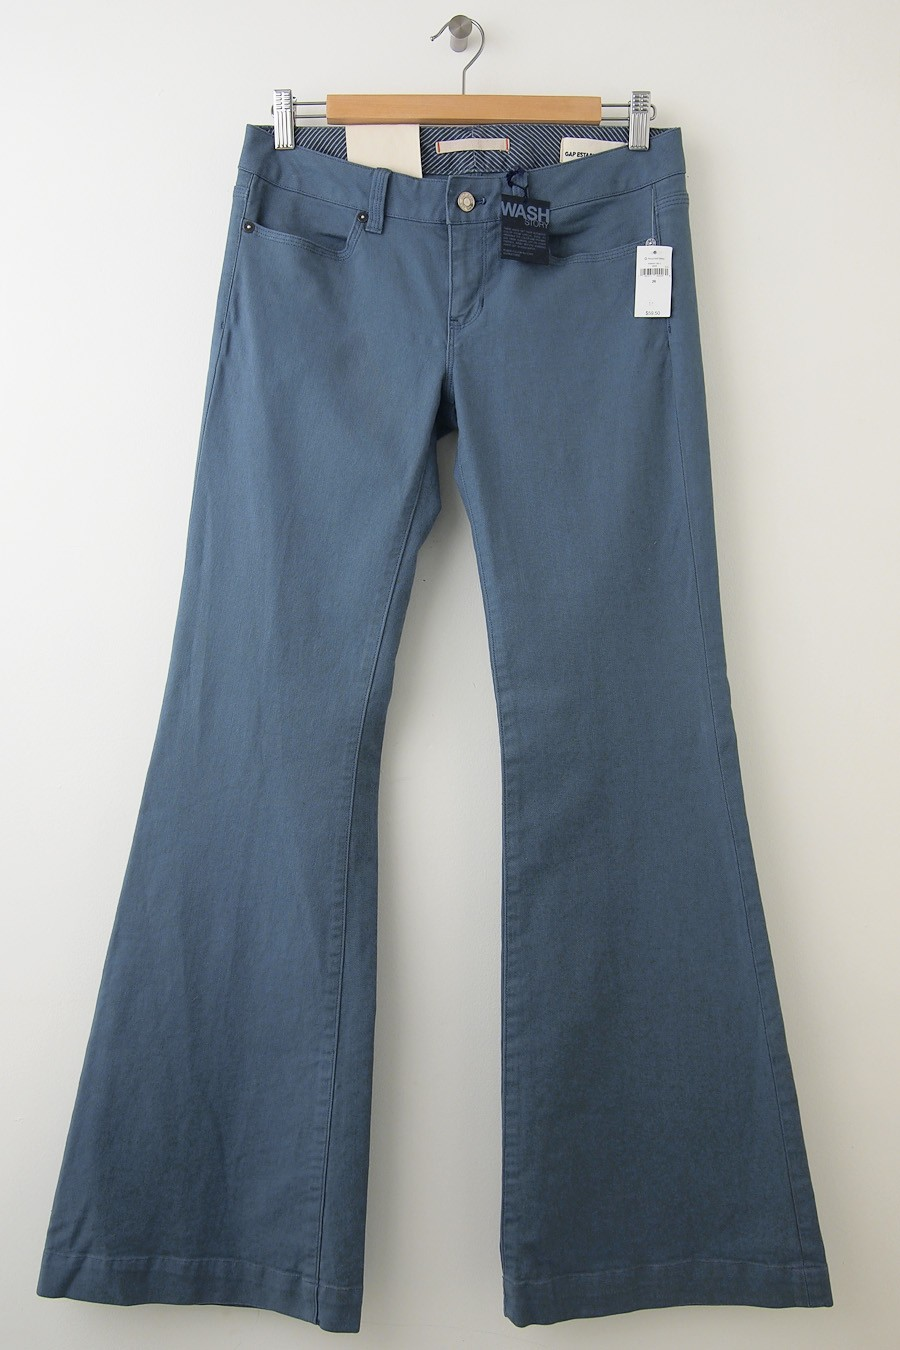 Simple Gap Leather Pants Women Size 10  EBay